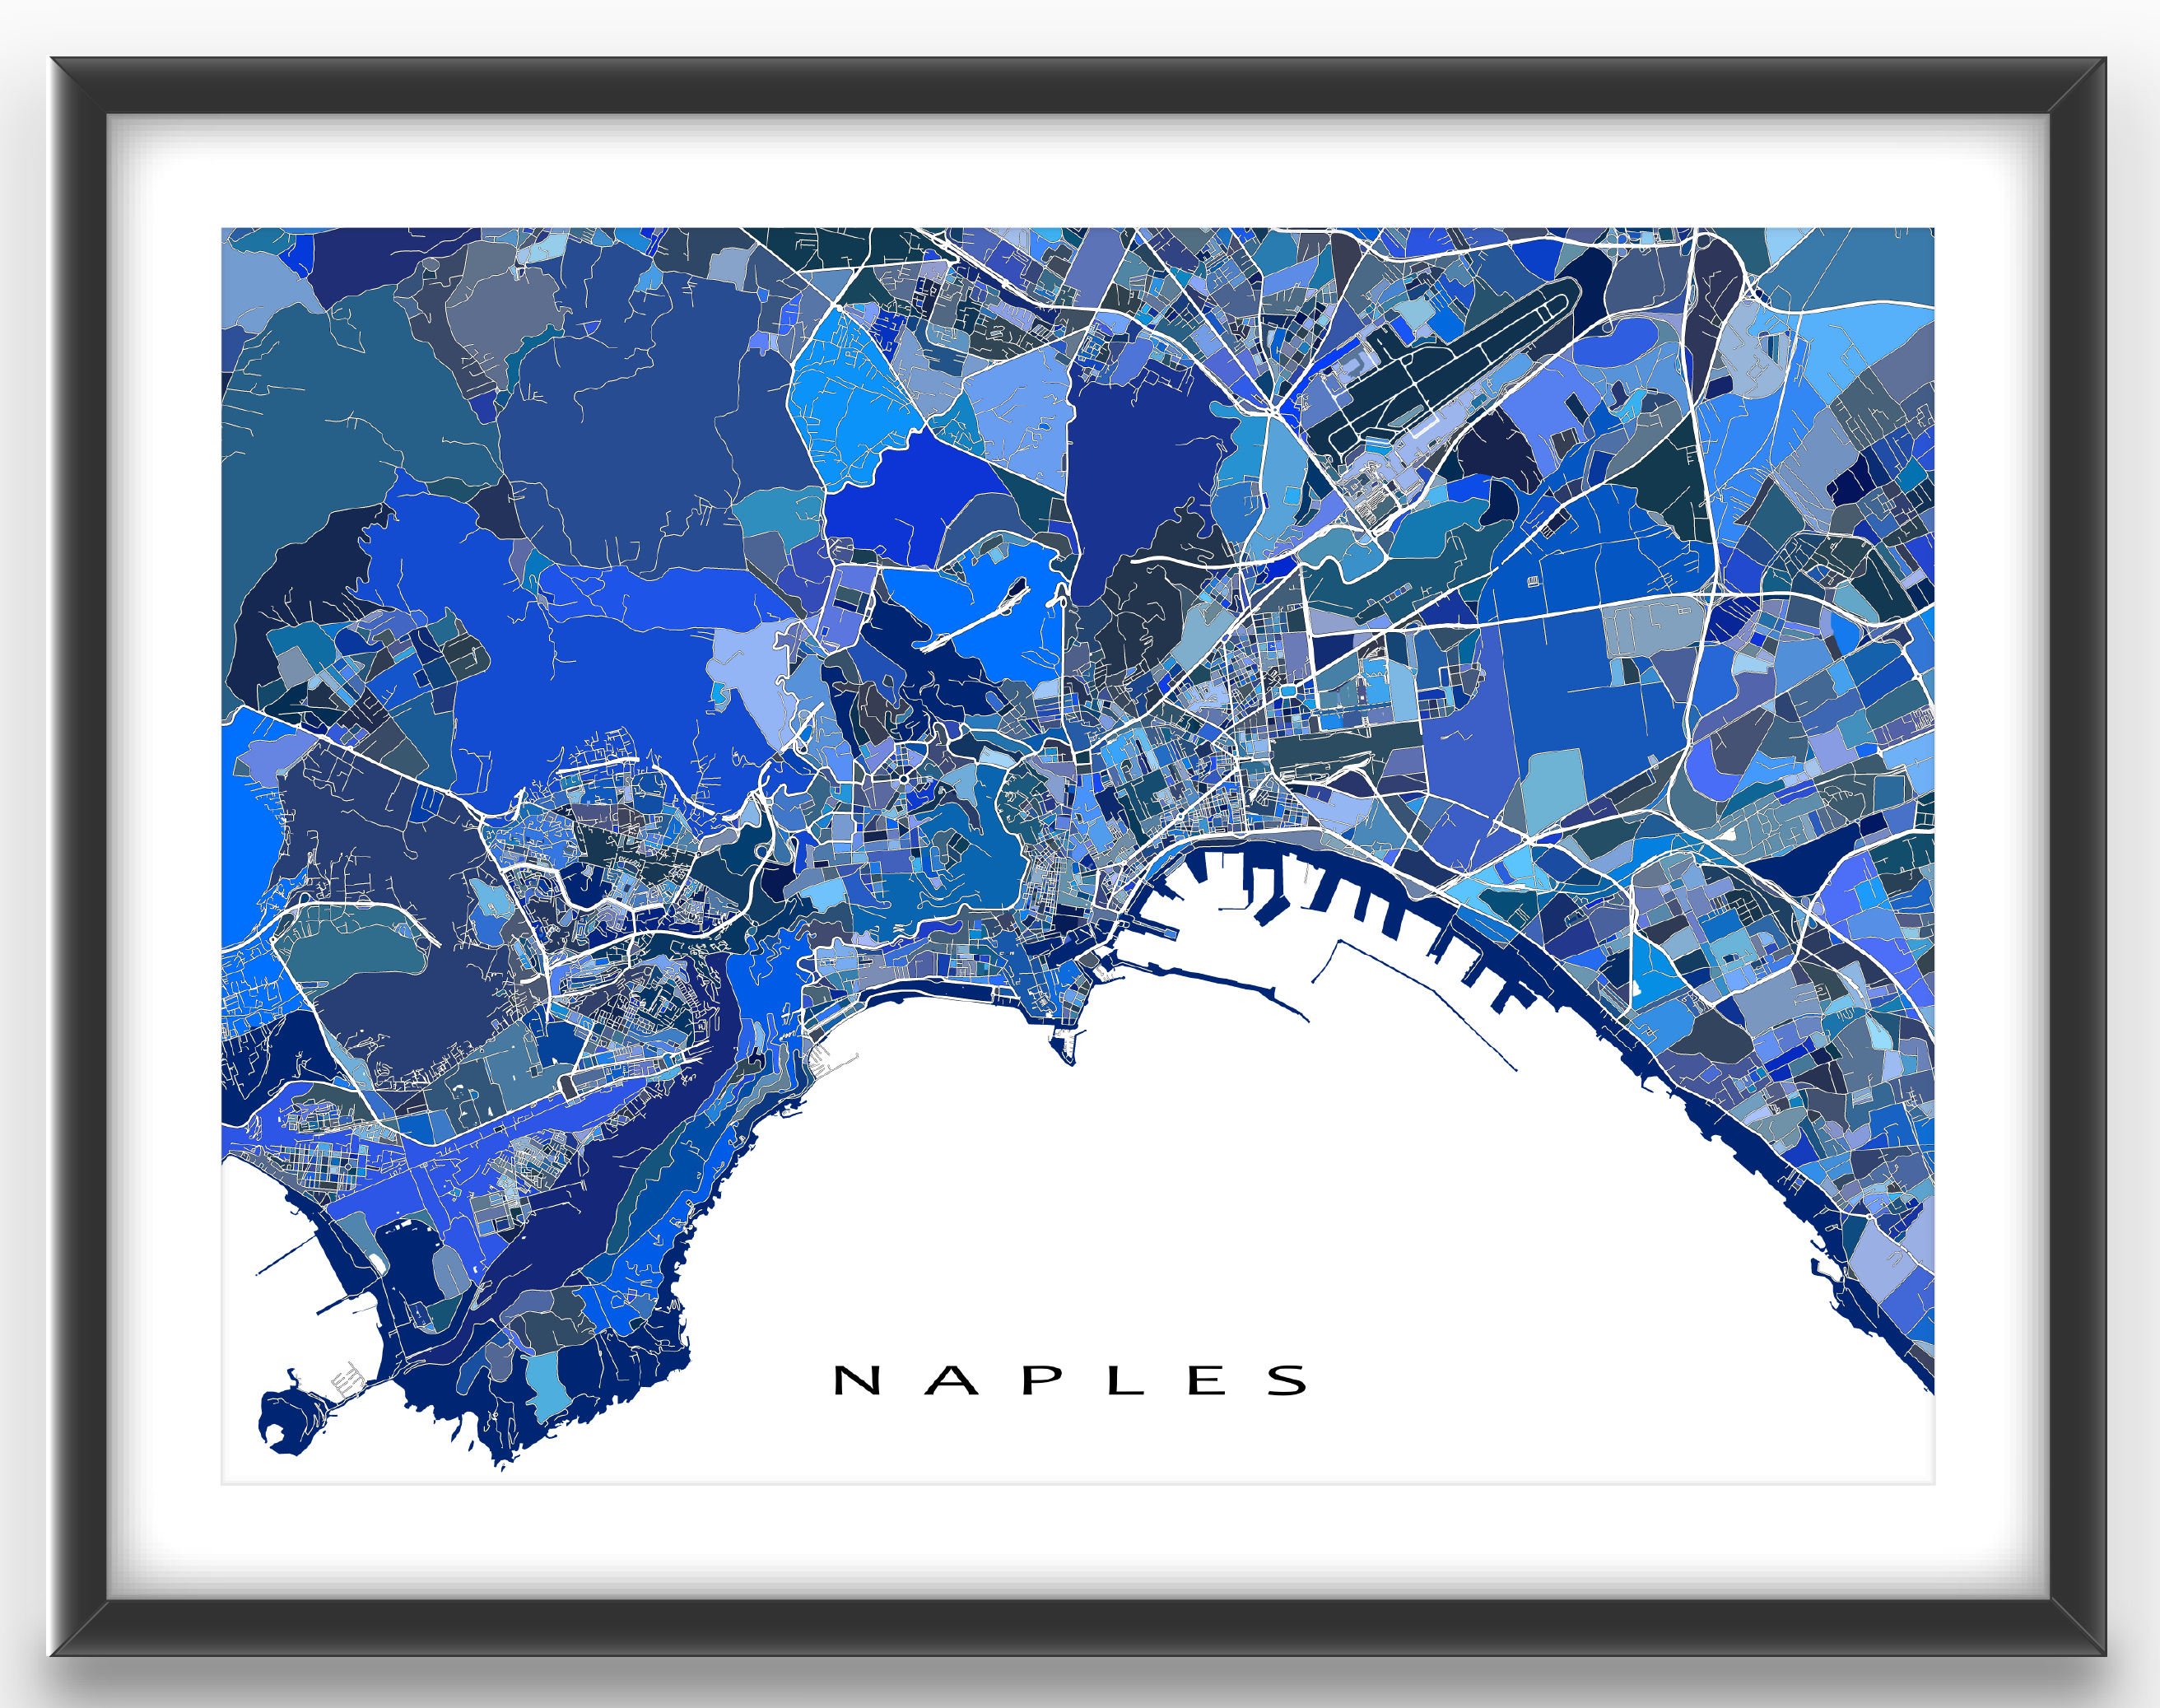 Naples map print featuring the historic city of naples italy this naples map print featuring the historic city of naples italy this naples map art gumiabroncs Image collections